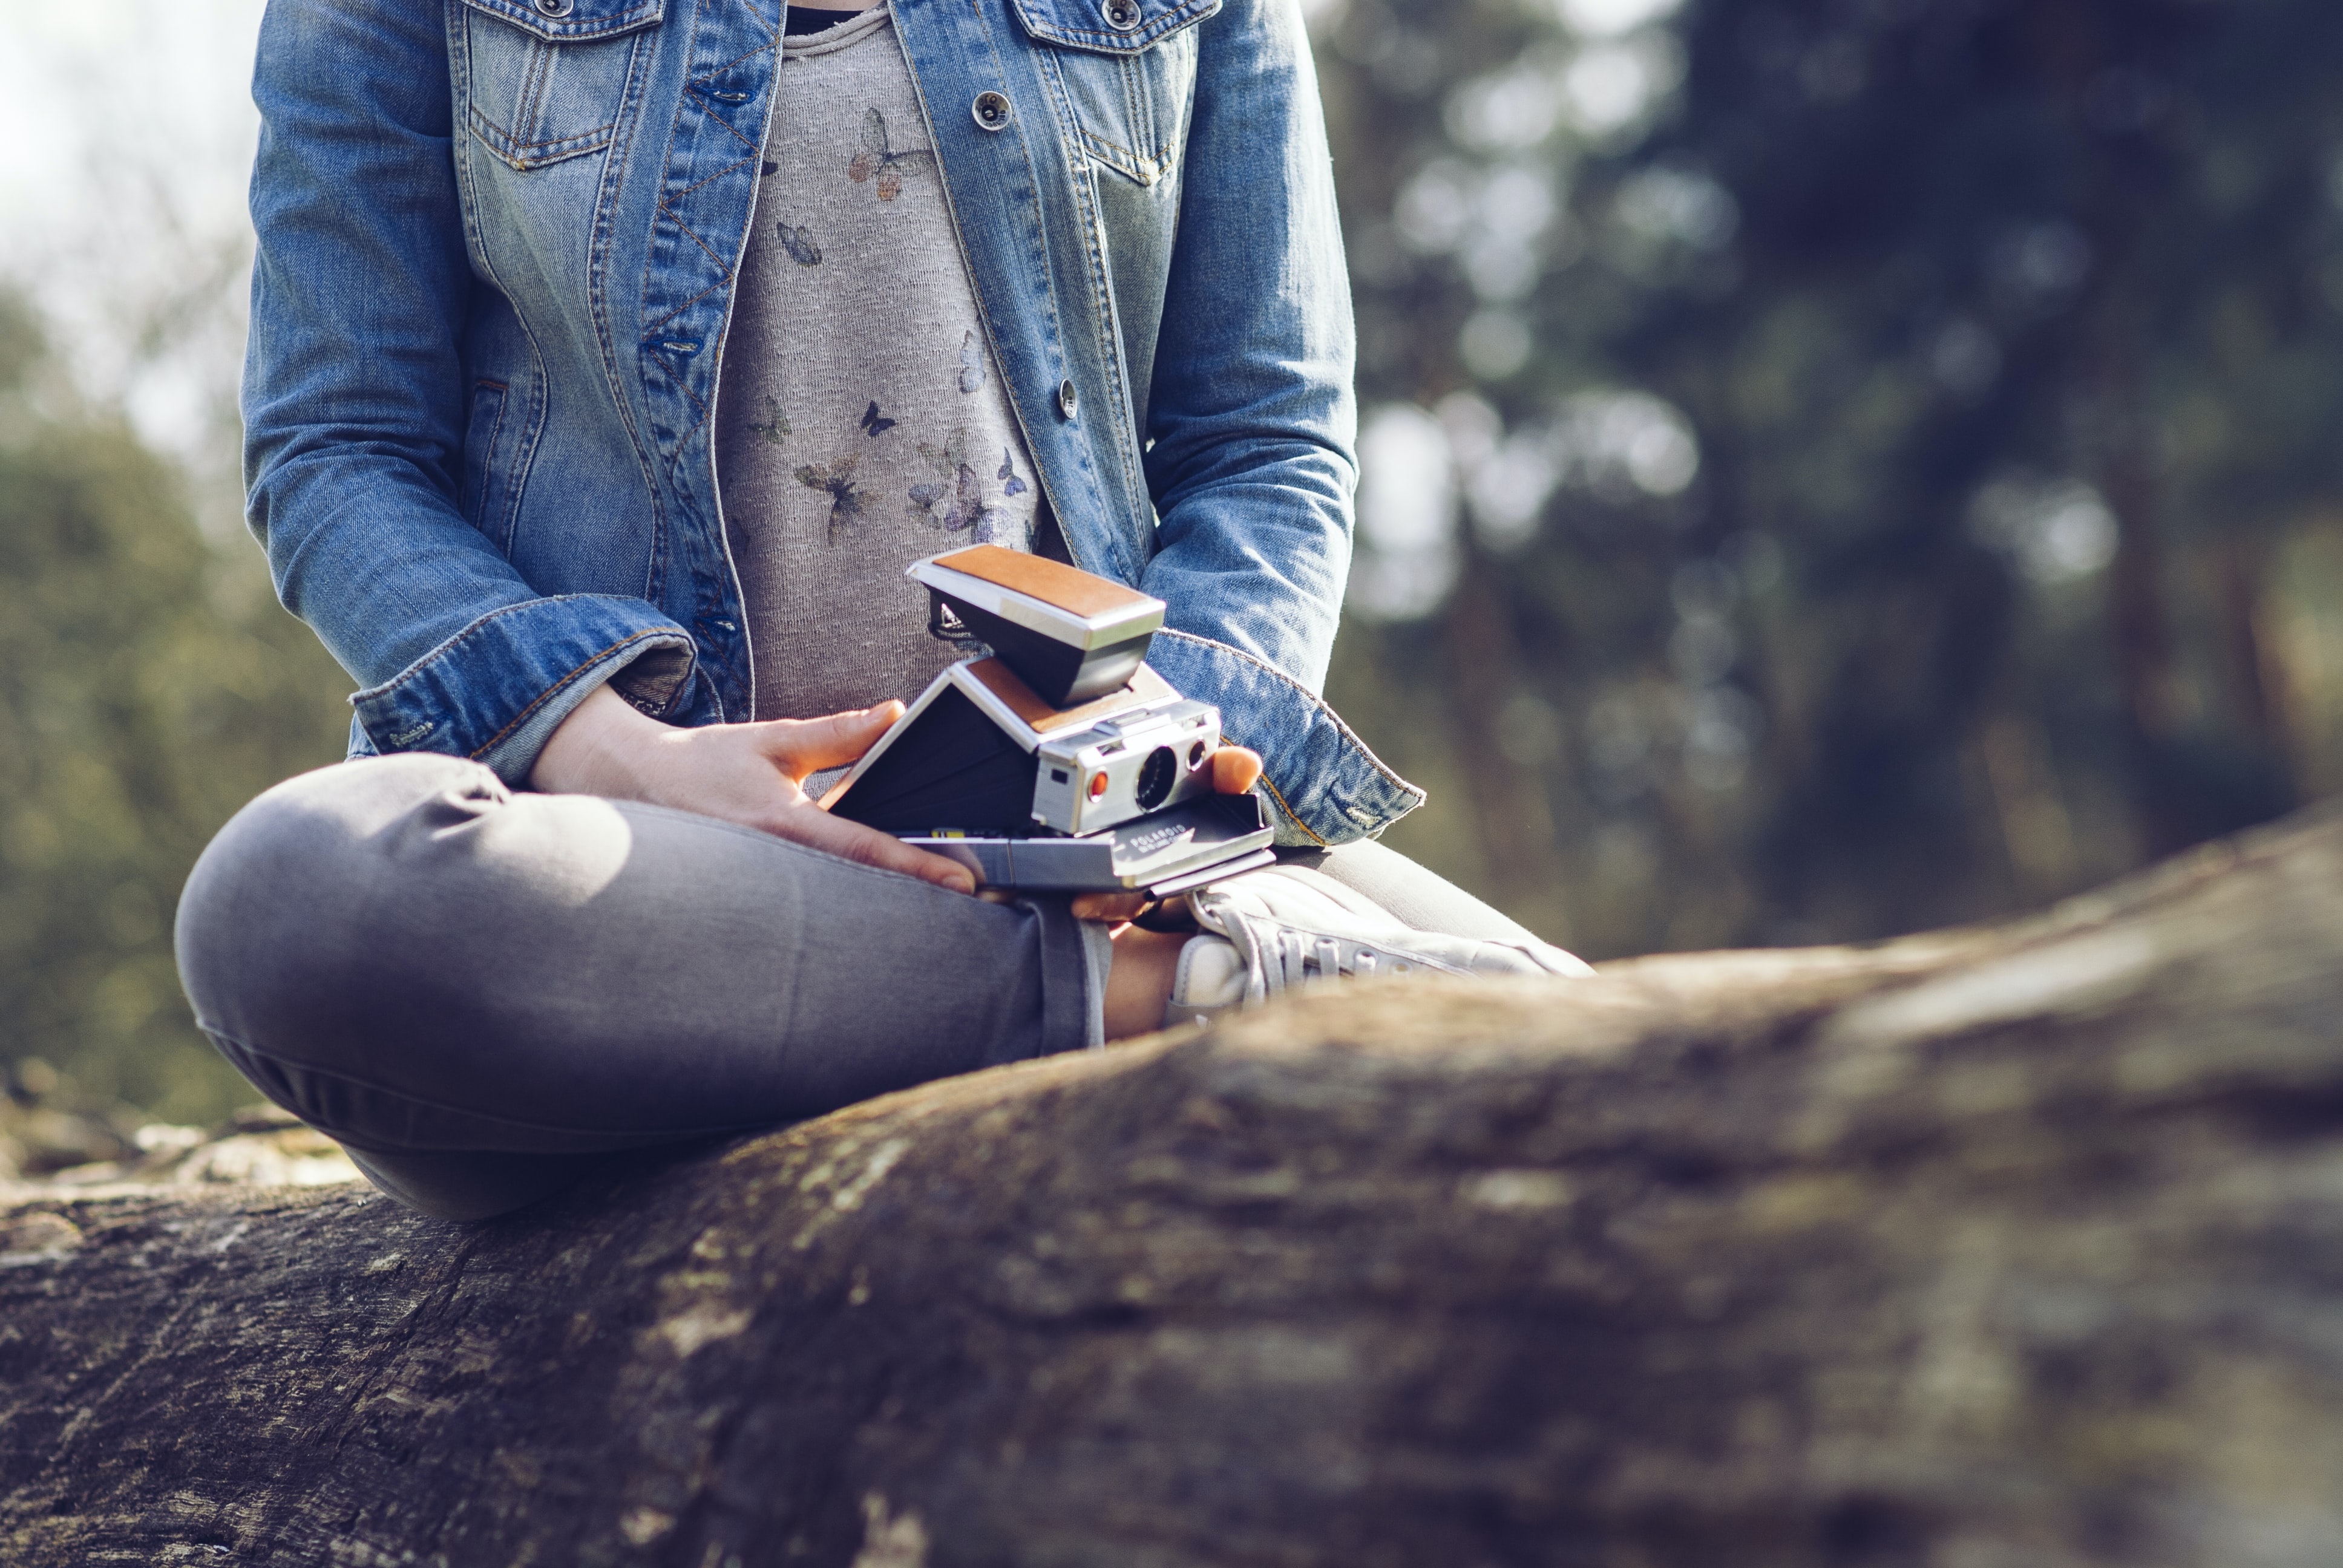 woman sitting on log holding camera and book